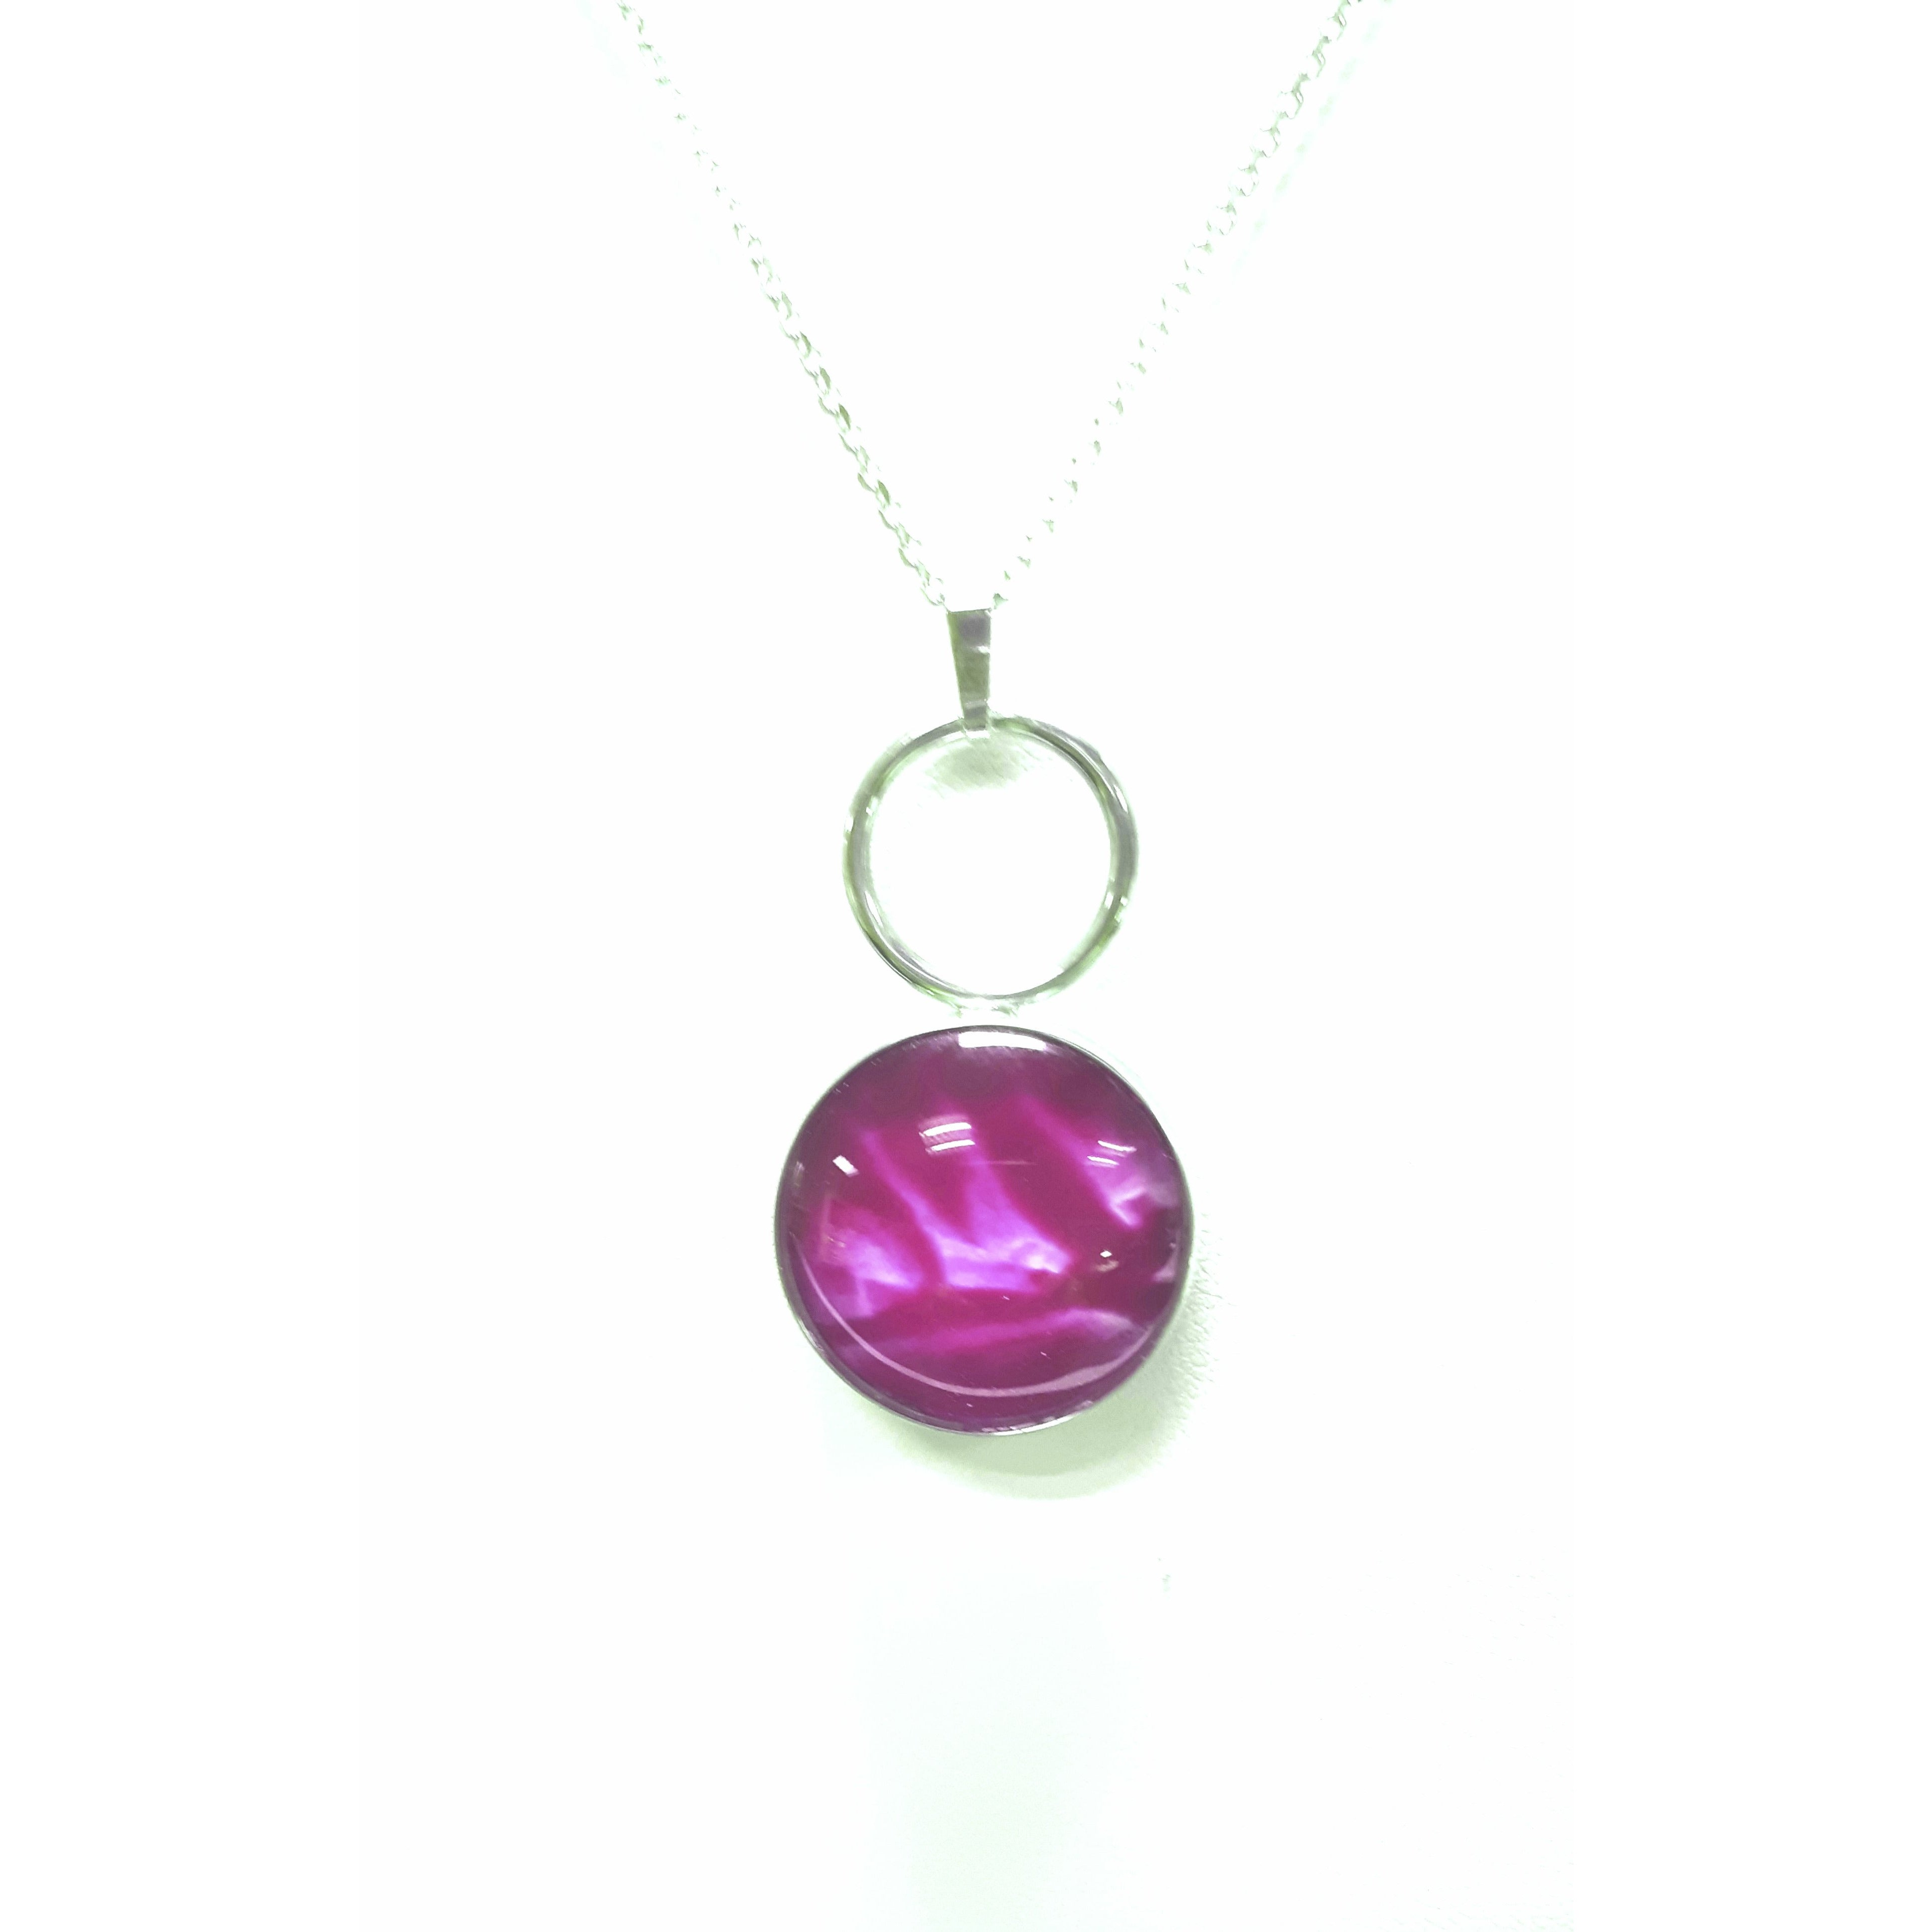 Loop 925 Sterling Silver Pendant by Val B's Wax Jewellery